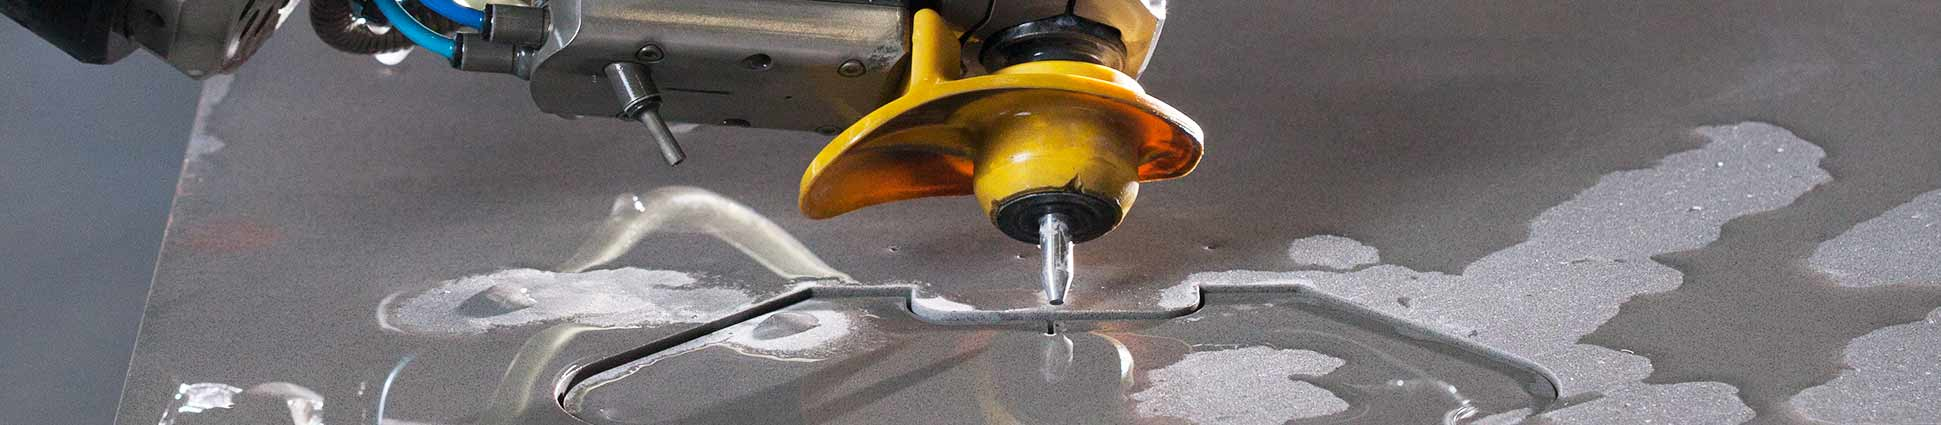 Waterjet cutting head tilted towards the background, cutting gray colored stone material